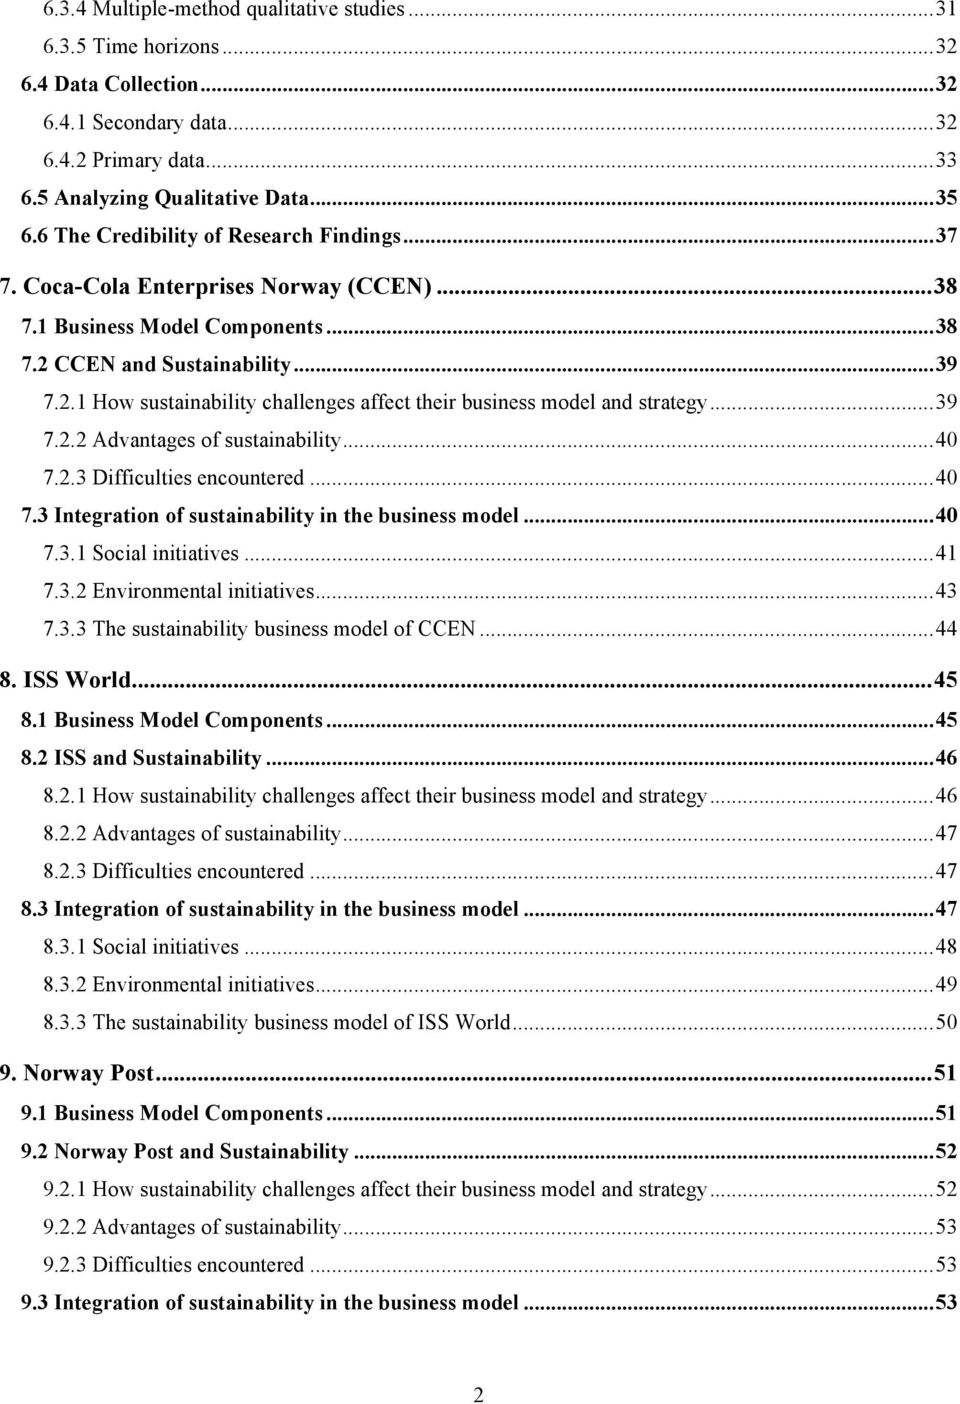 CCEN and Sustainability... 39 7.2.1 How sustainability challenges affect their business model and strategy... 39 7.2.2 Advantages of sustainability... 40 7.